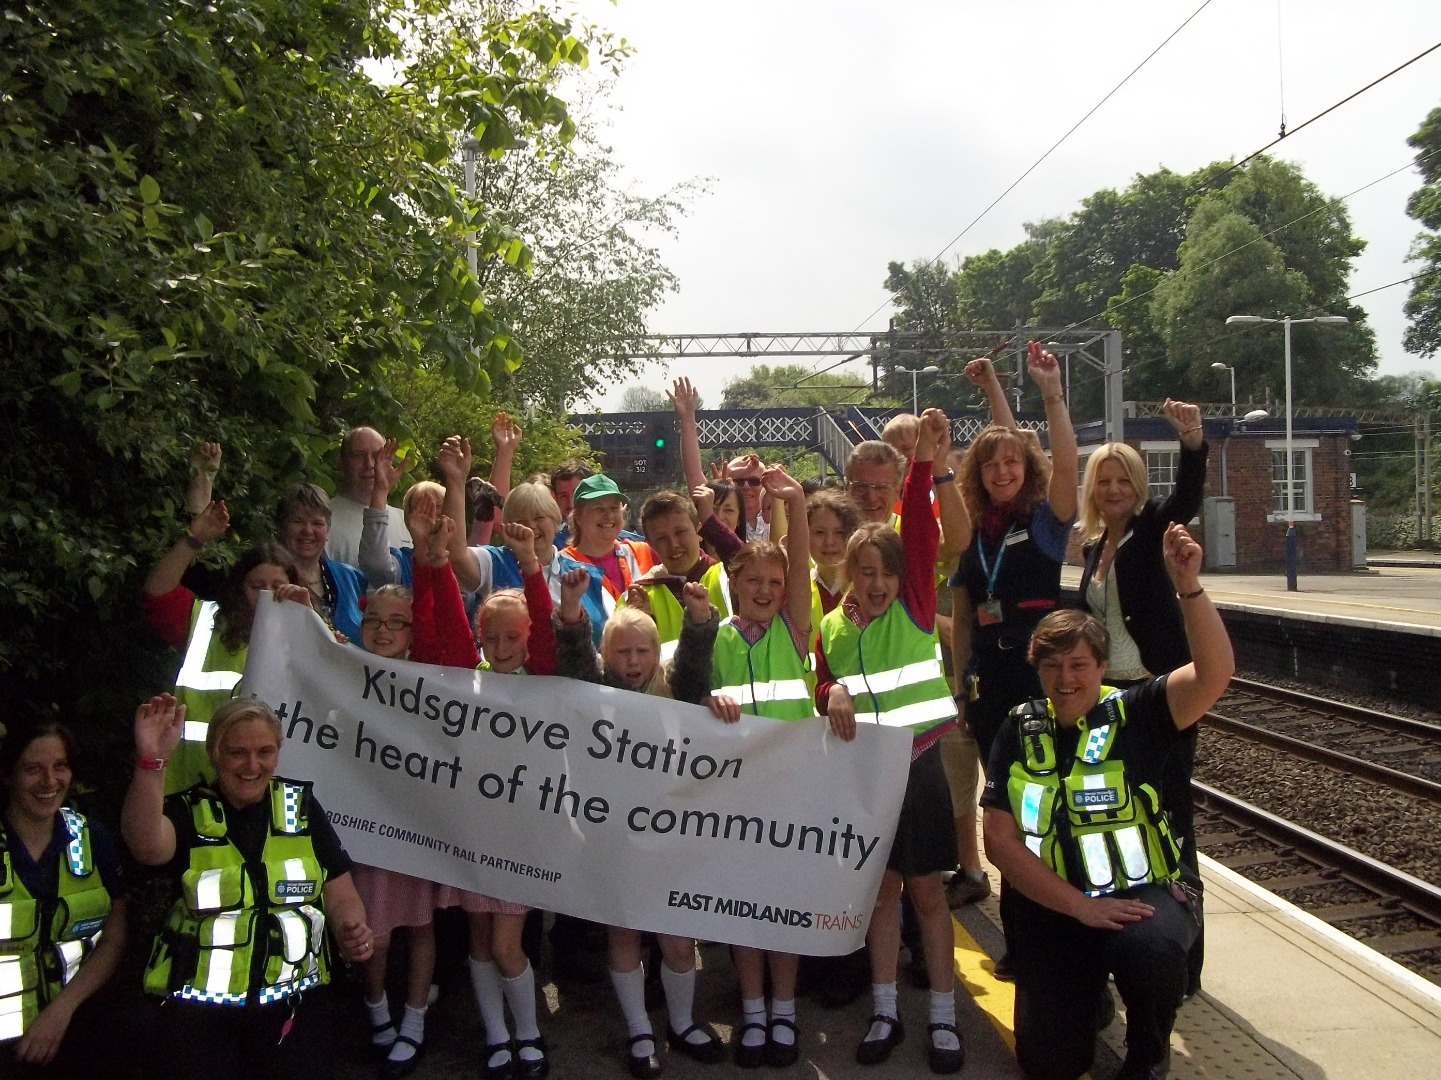 A great community day at Kidsgrove station